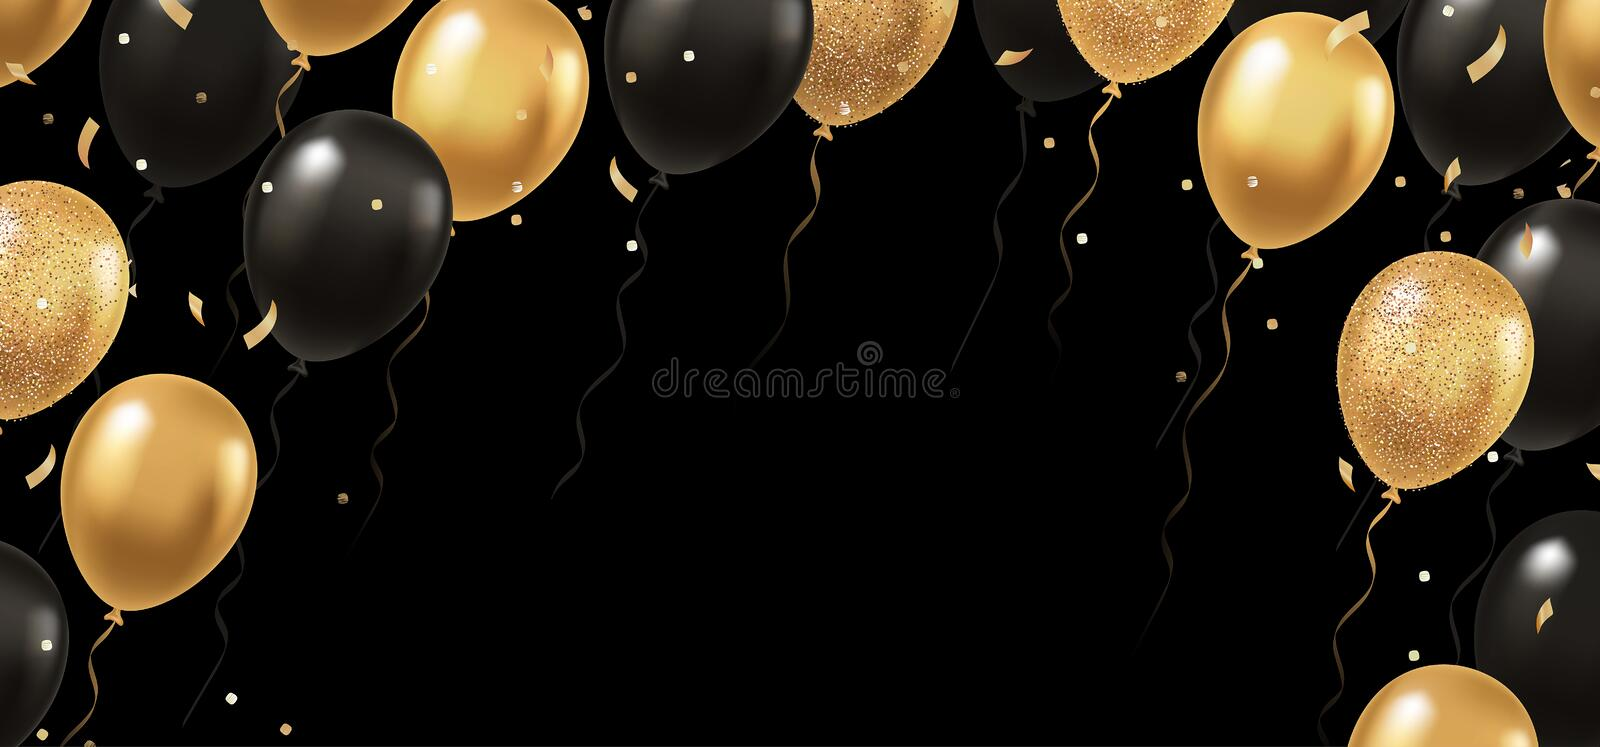 Celebration, festival background with gold and black realistic 3d vector flying balloons stock illustration